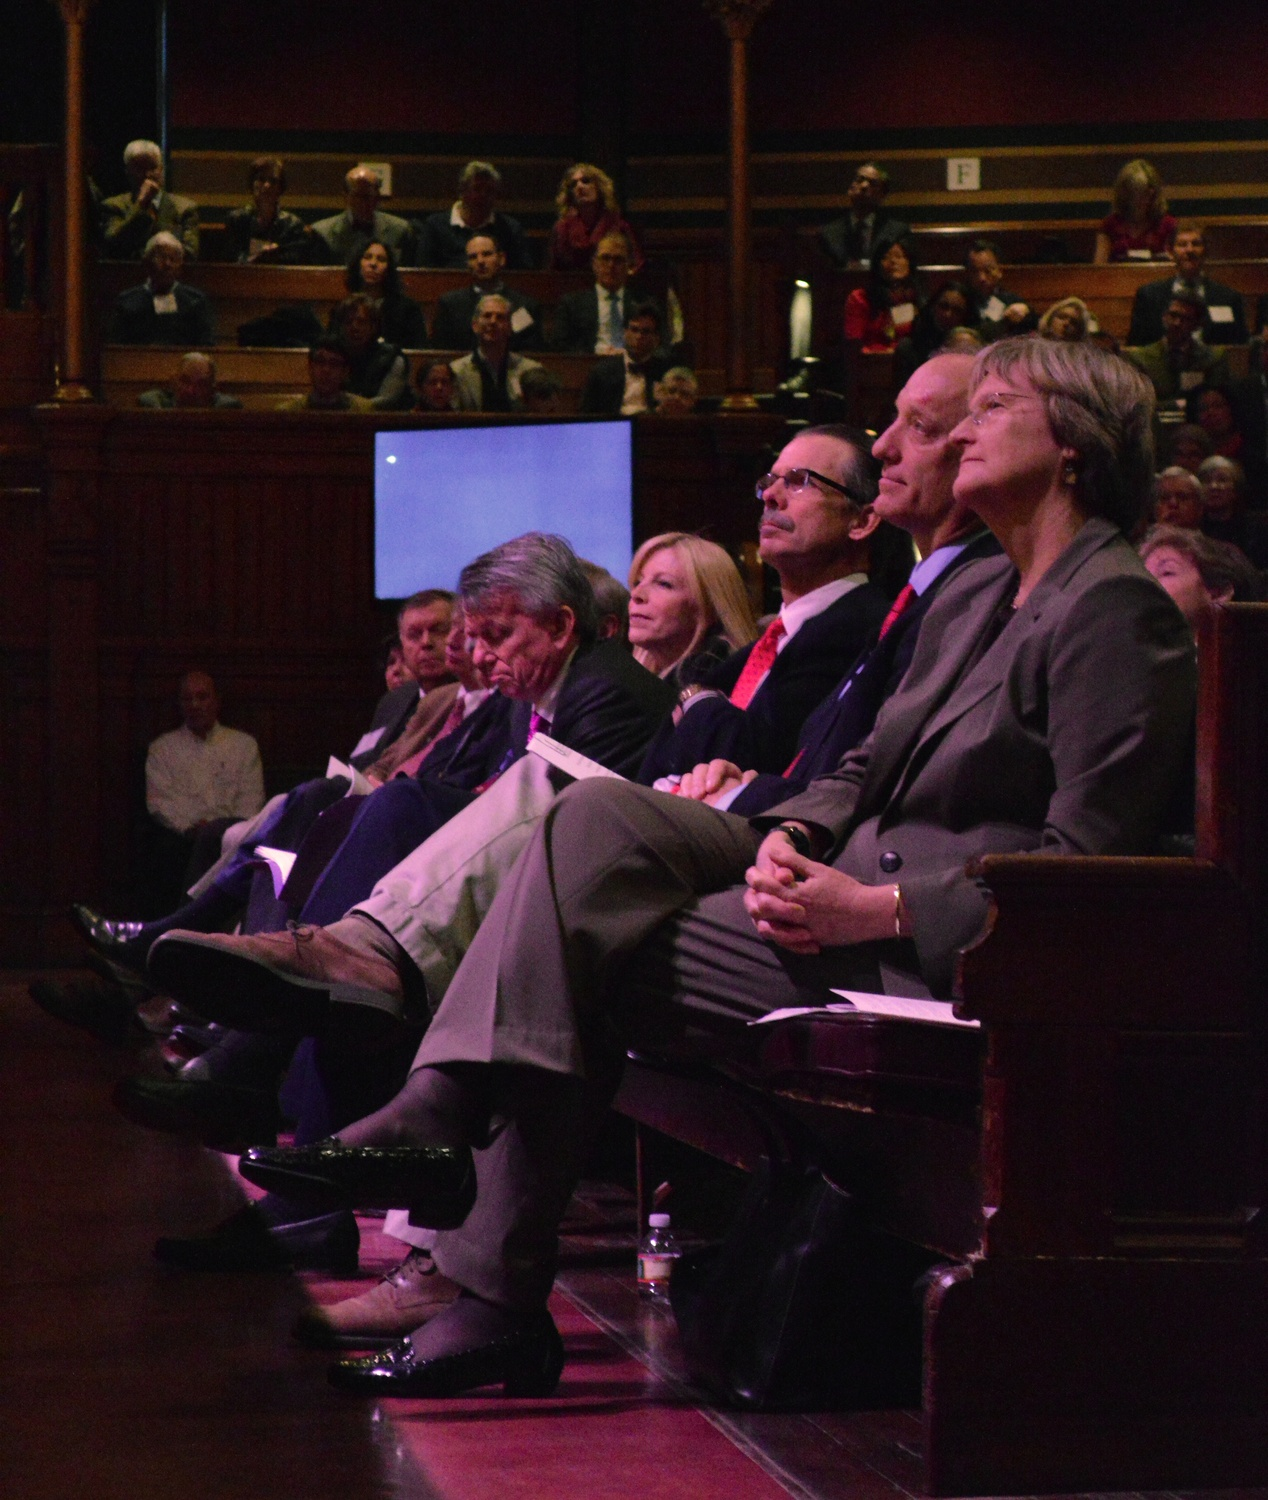 From right to left, University Drew G. Faust, FAS Dean Michael D. Smith, and campaign co-chairs Glenn H. Hutchins '77, Paul B. Edgerley, and Sandra M. Edgerley '84 watch FAS campaign co-chair Carl J. Martignetti '81 address the crowd at the FAS campaign launch event in Sanders Theatre in 2013.